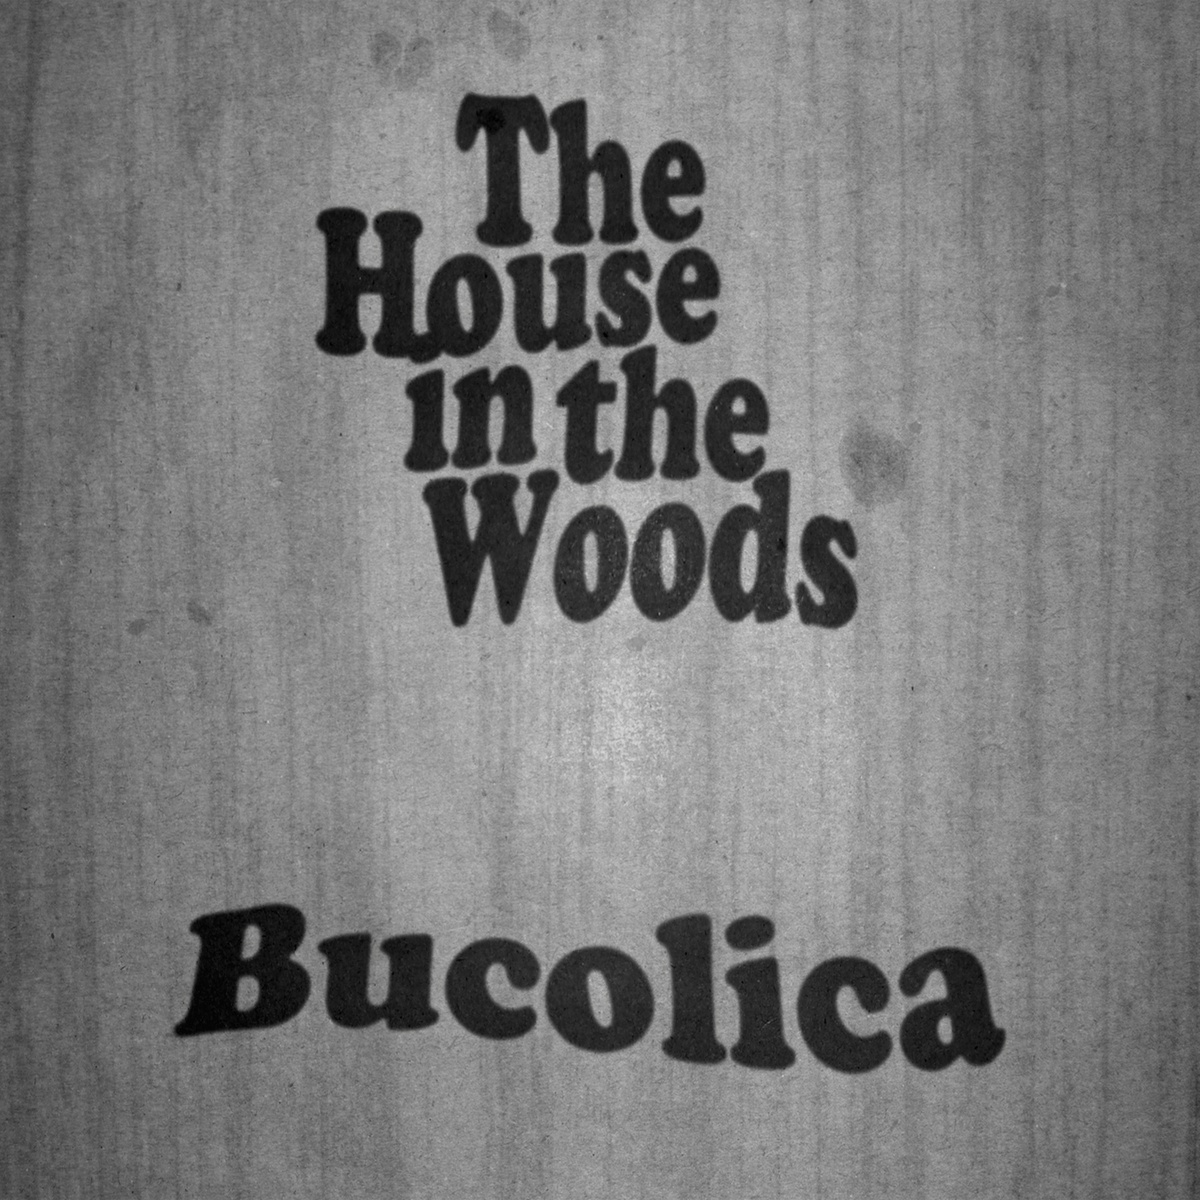 """Astonishing """"Bucolica"""" album by Martin Jenkins' The House In The Woods project"""